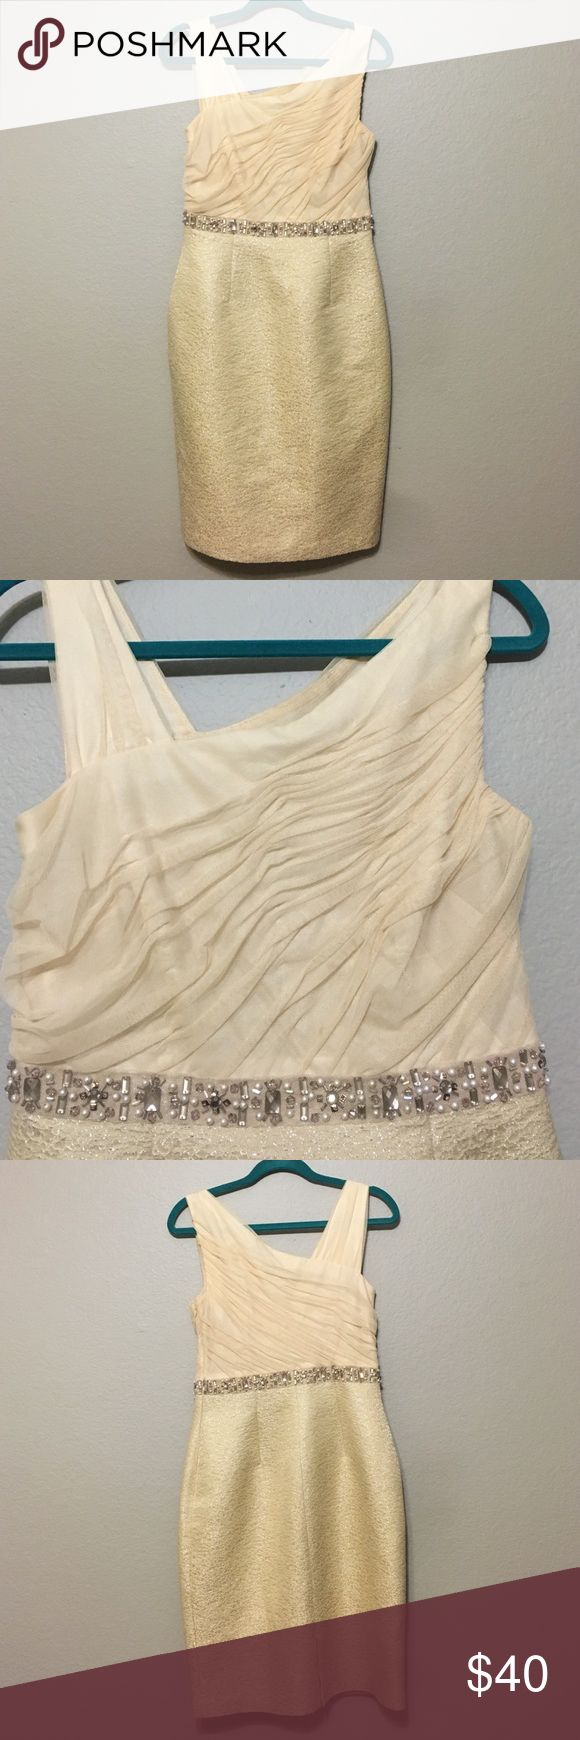 Kay Unger NY Formal cocktail wedding dress Beautiful cream formal dress. Belt had beaded pearls and jewels. Worn a handful of times, needs to be dry cleaned, but has a lot of wear left in it! Dresses Wedding